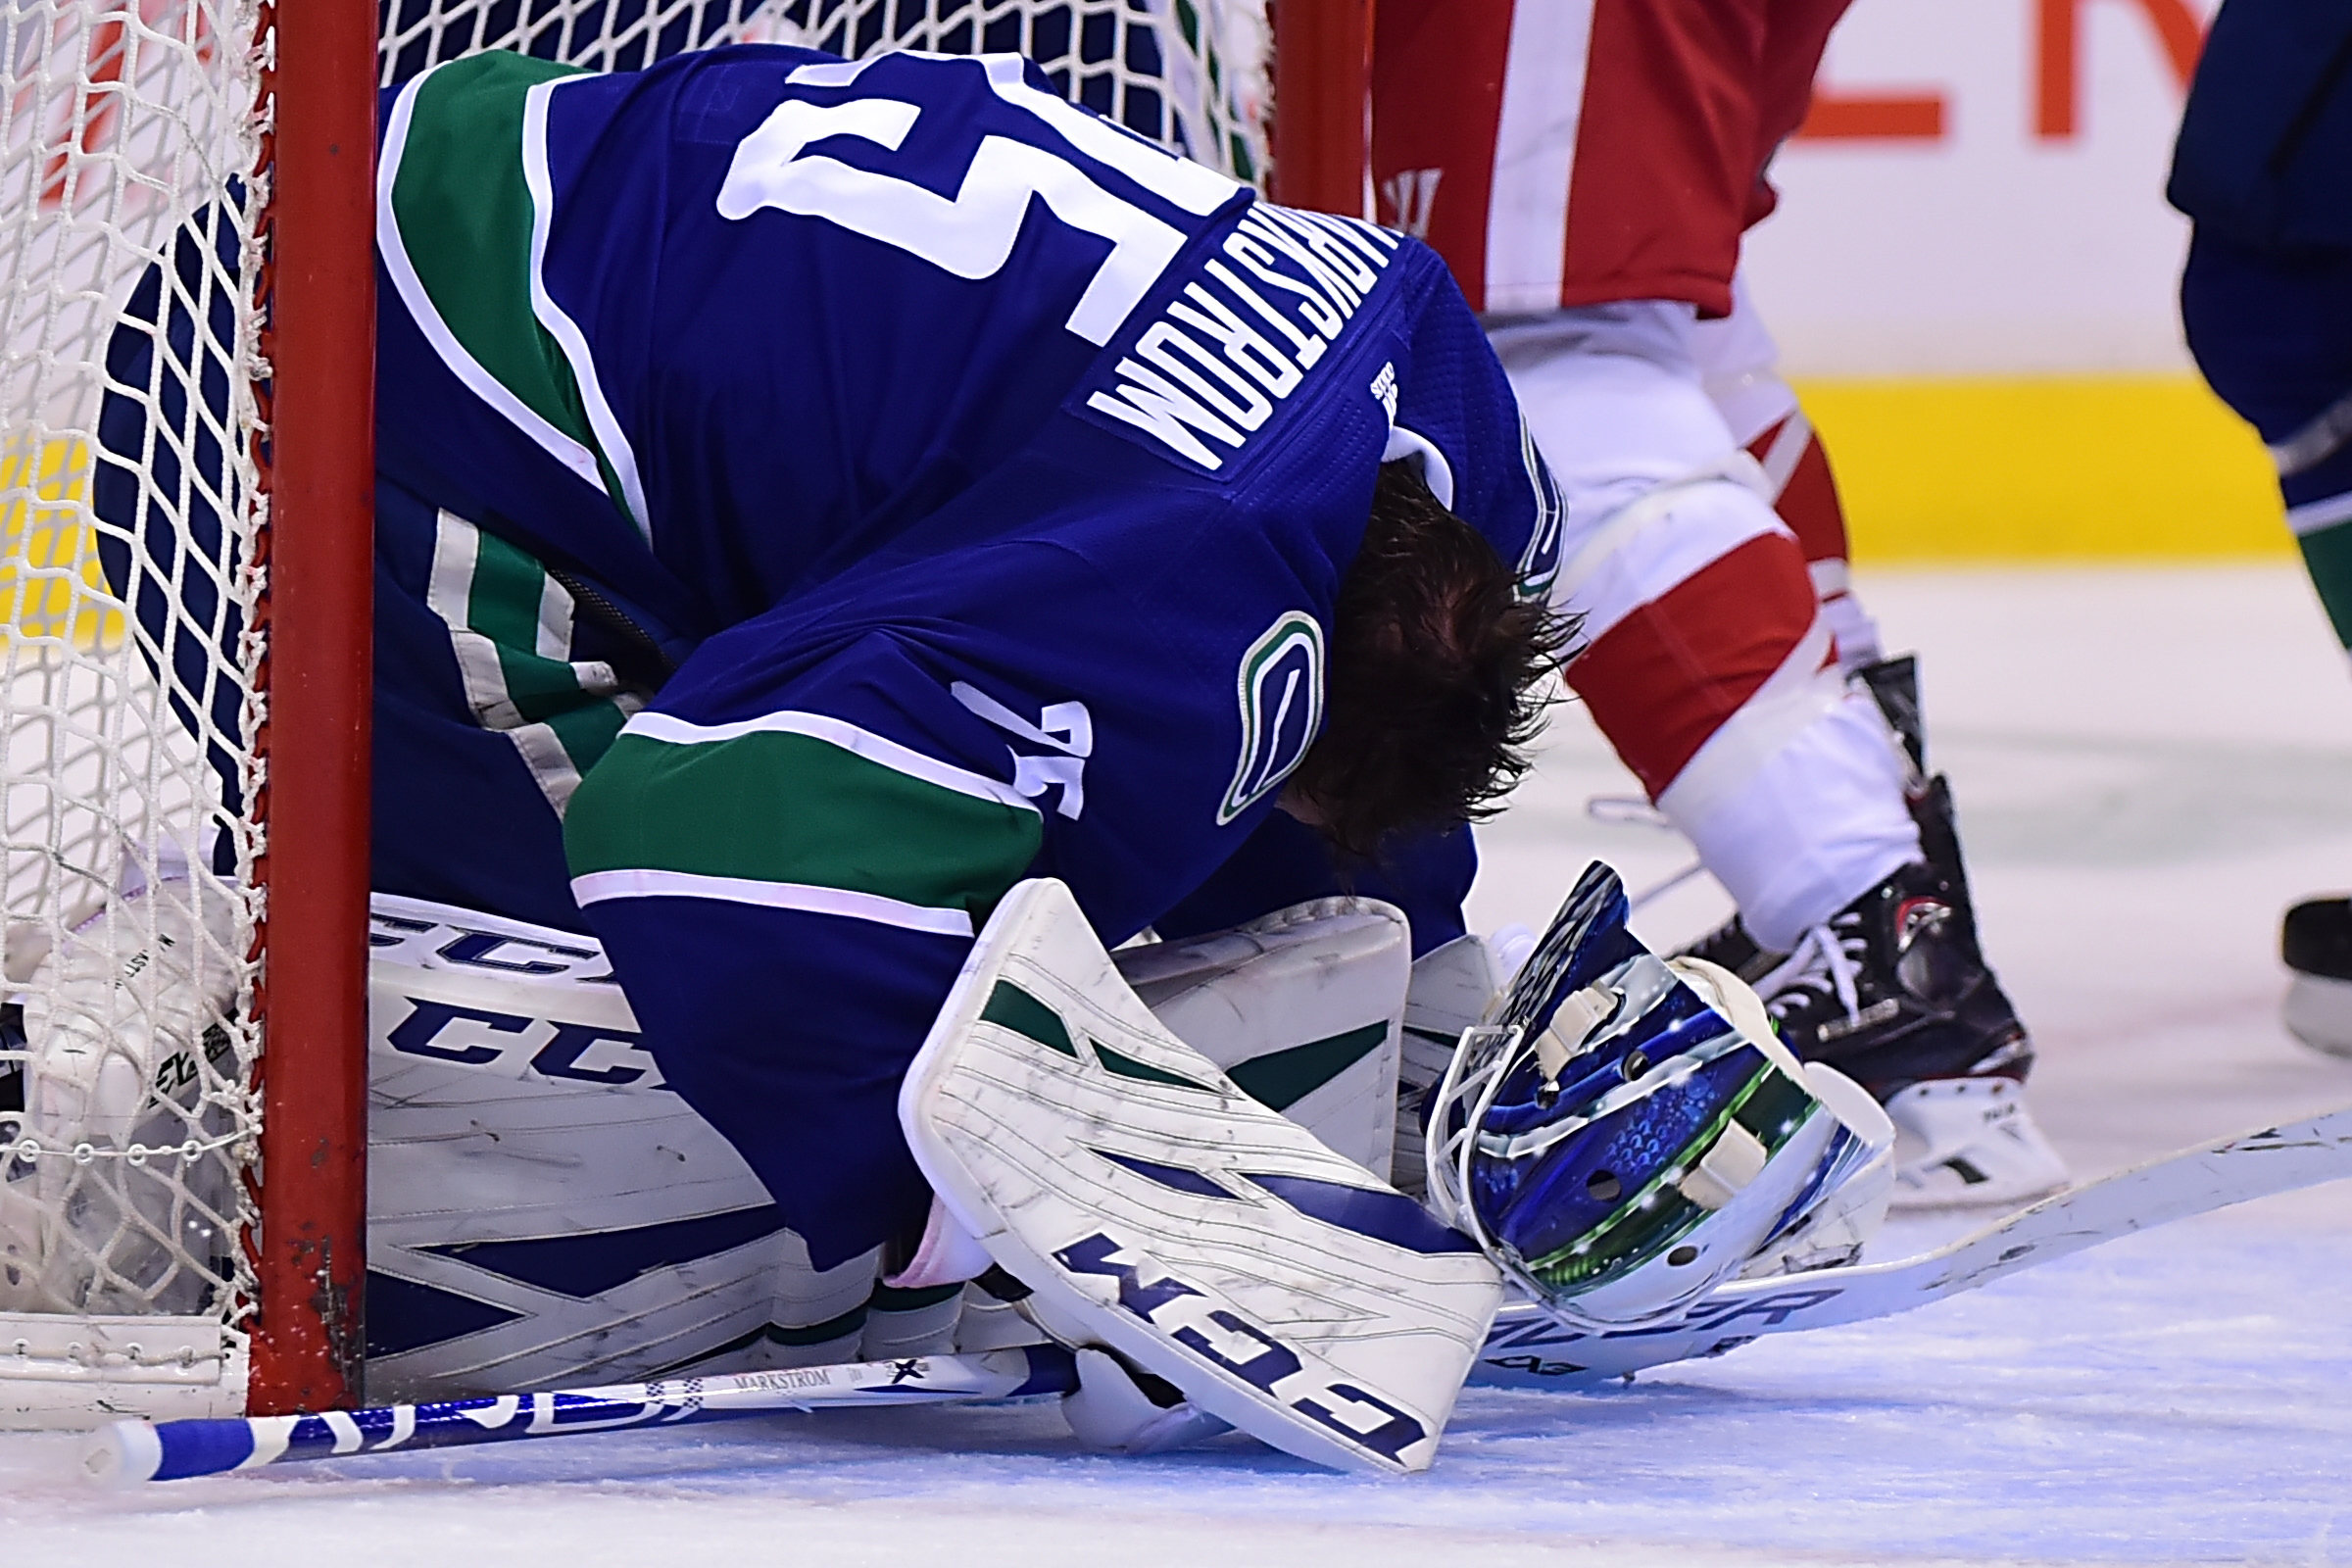 Look Canucks Goalie Jacob Markstrom Plays On Without Mask The Sports Daily